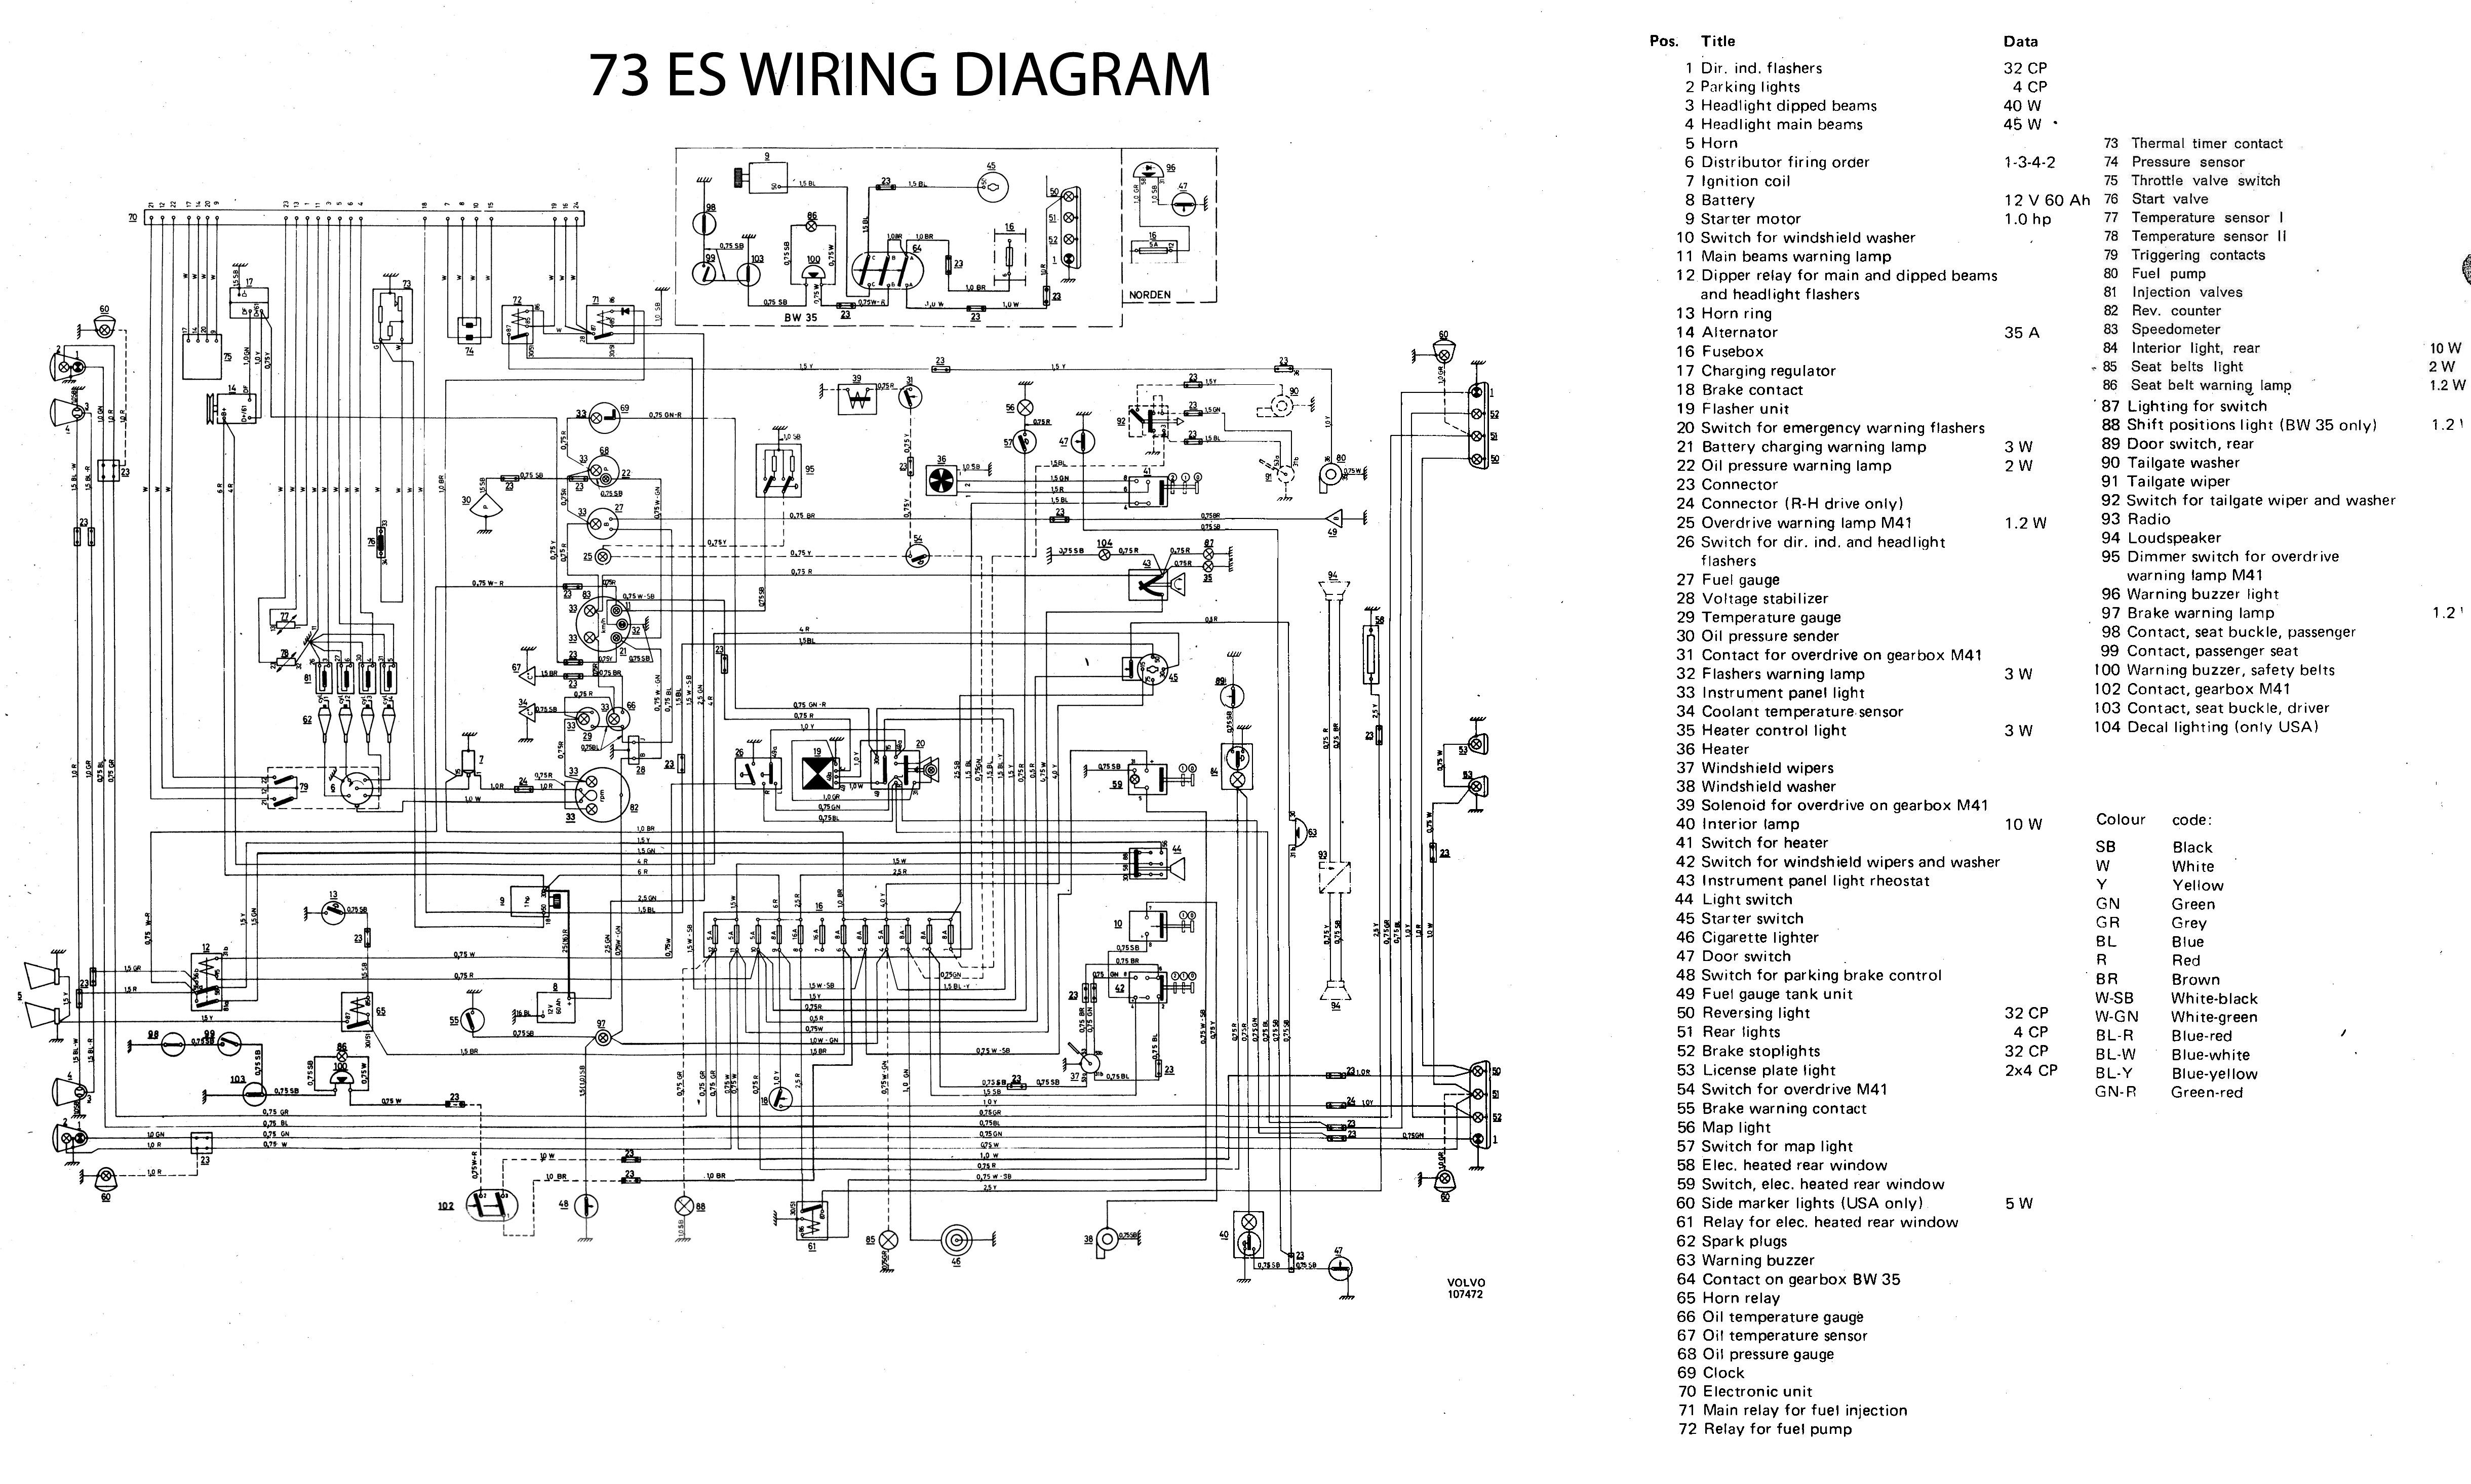 73 Wiring s40 wiring diagram s10 wiring diagram \u2022 wiring diagrams j squared co 2001 volvo v70 xc wiring diagram at readyjetset.co